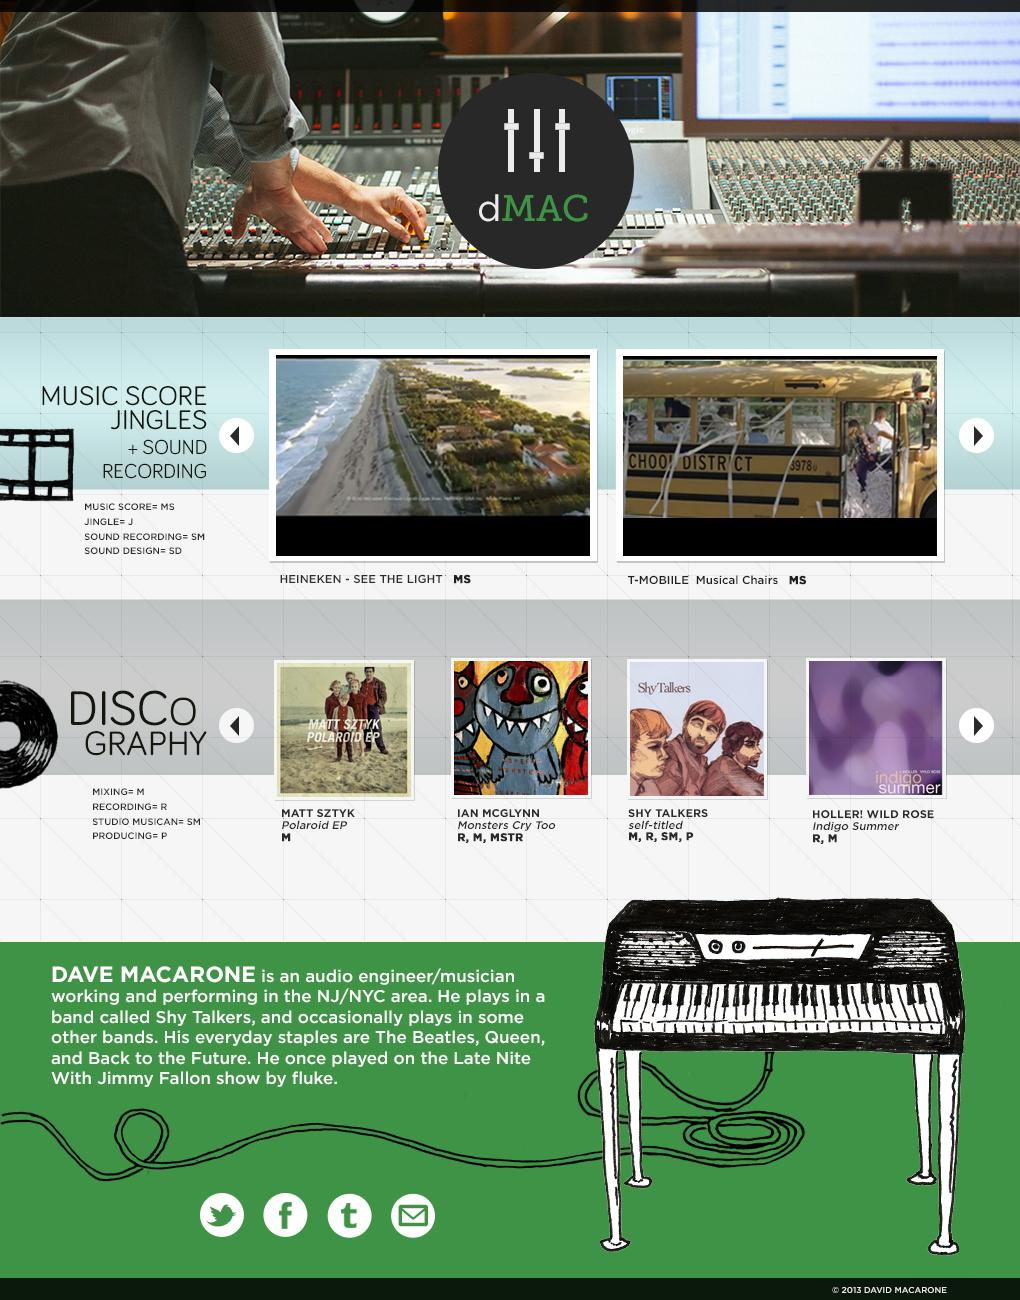 UPDATED: A Recording Engineer's Website - image 4 - student project